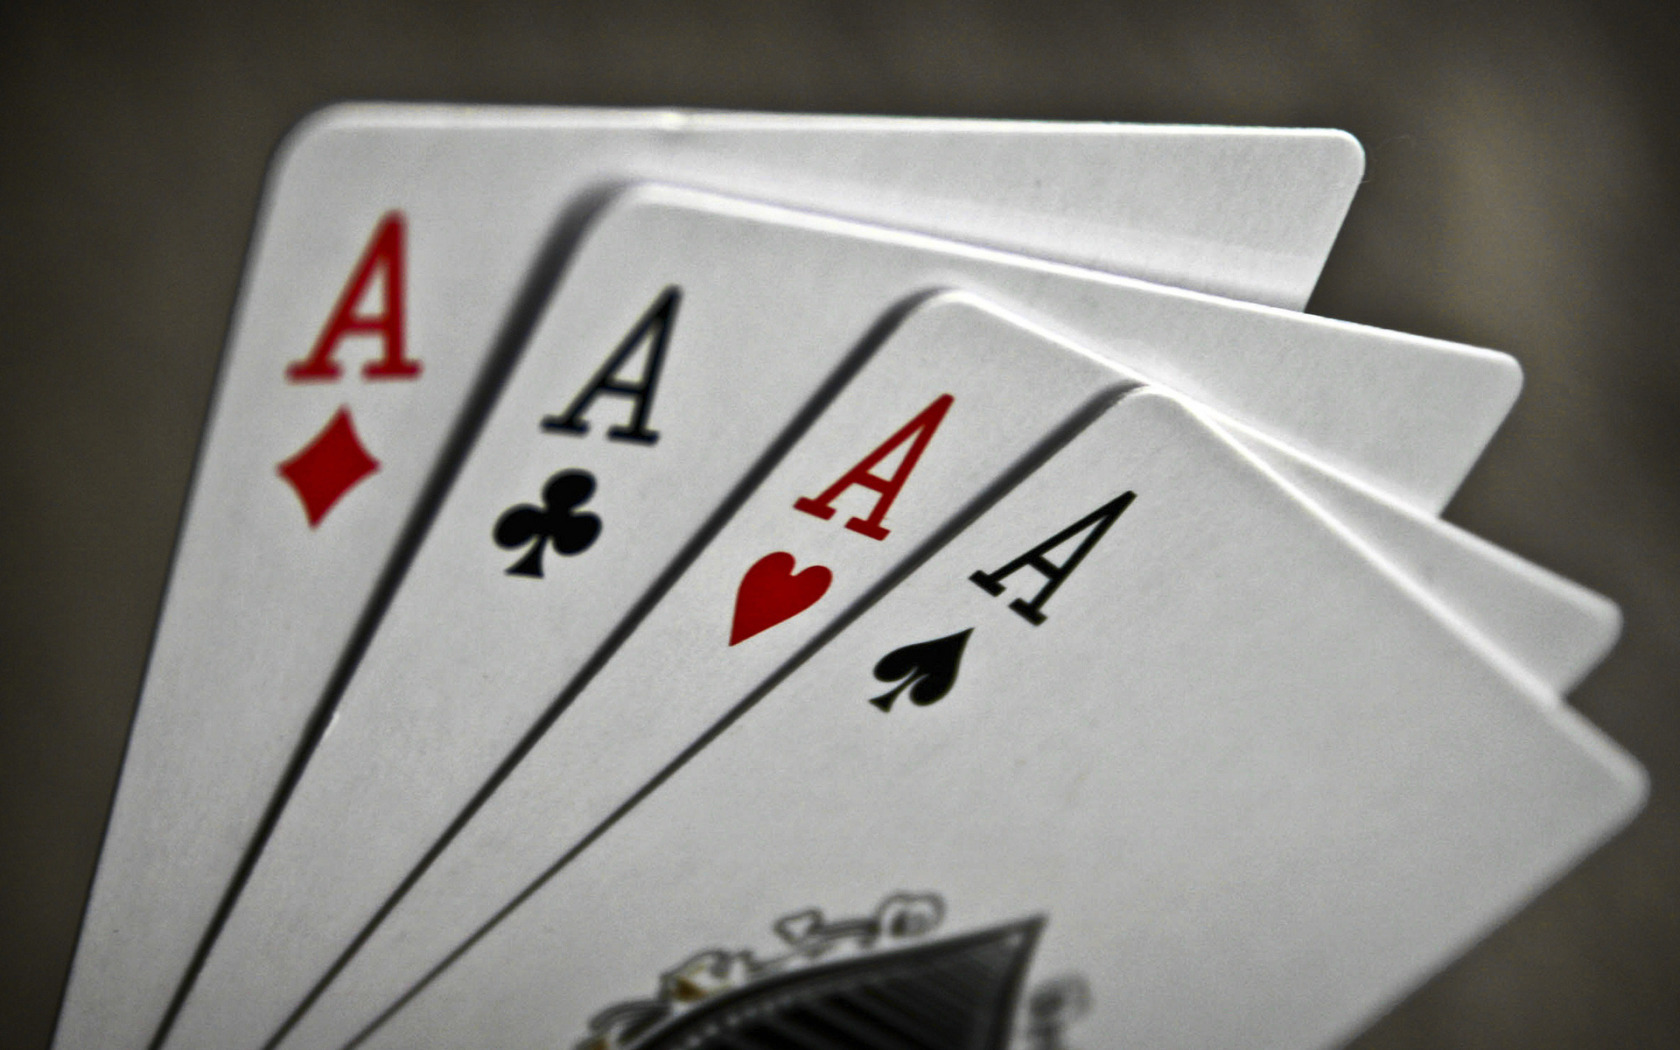 Poker four aces